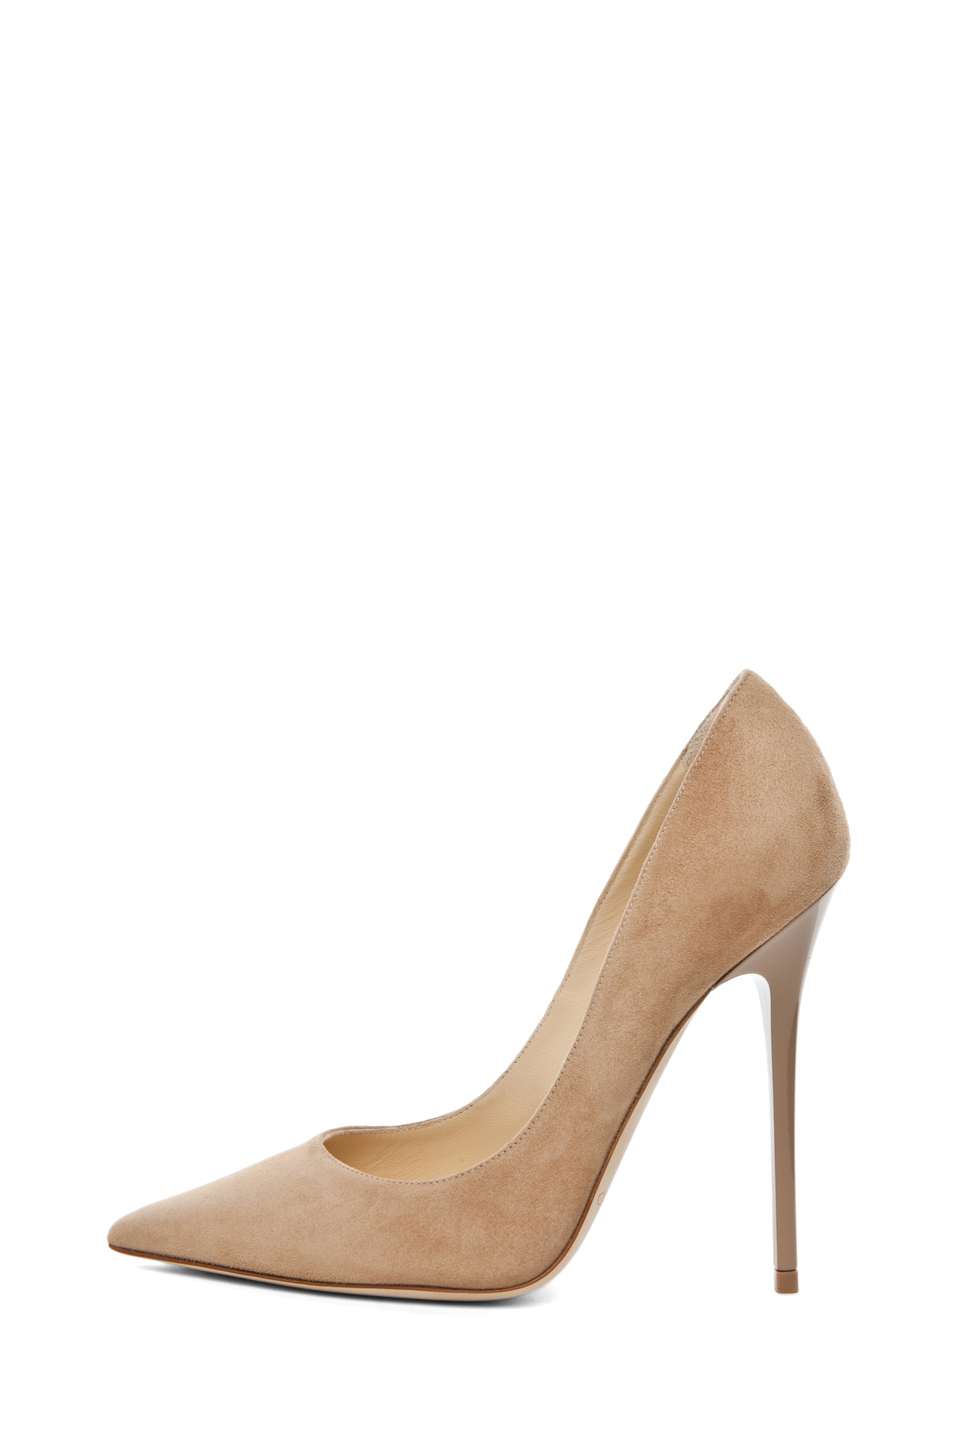 Jimmy Choo|Anouk Suede Pump in Nude